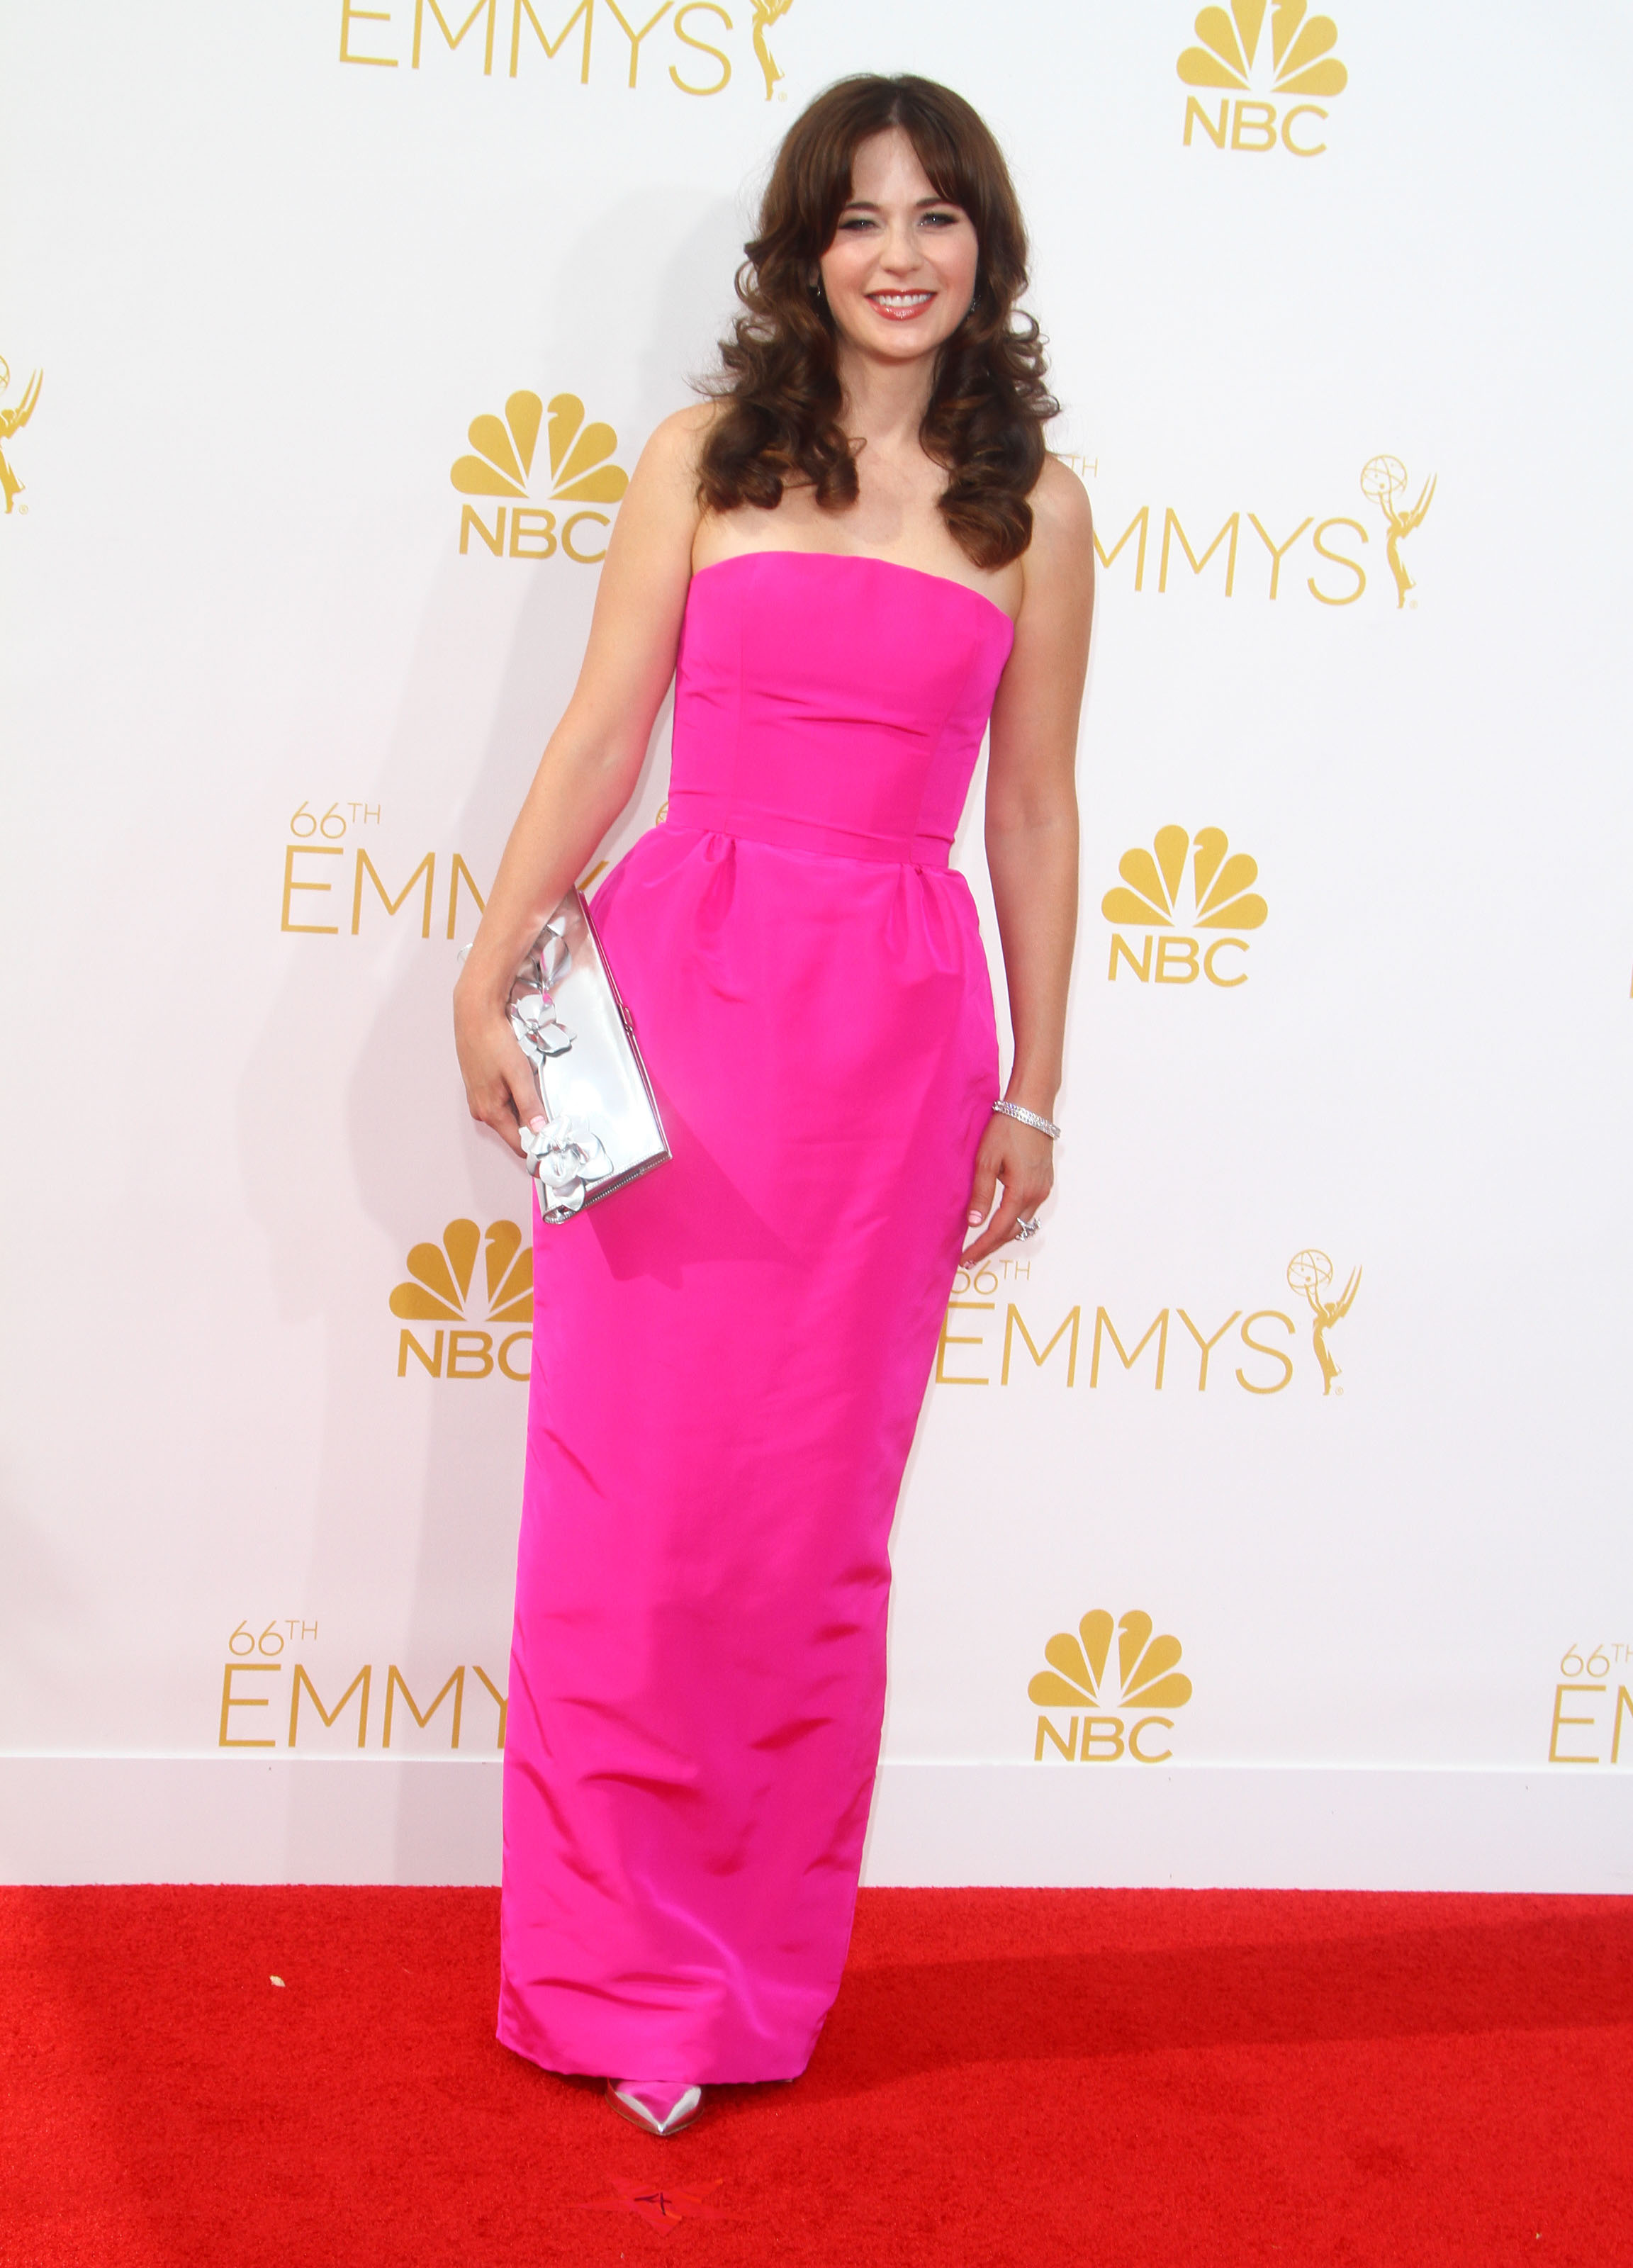 Zooey Deschanel at Emmys 2014